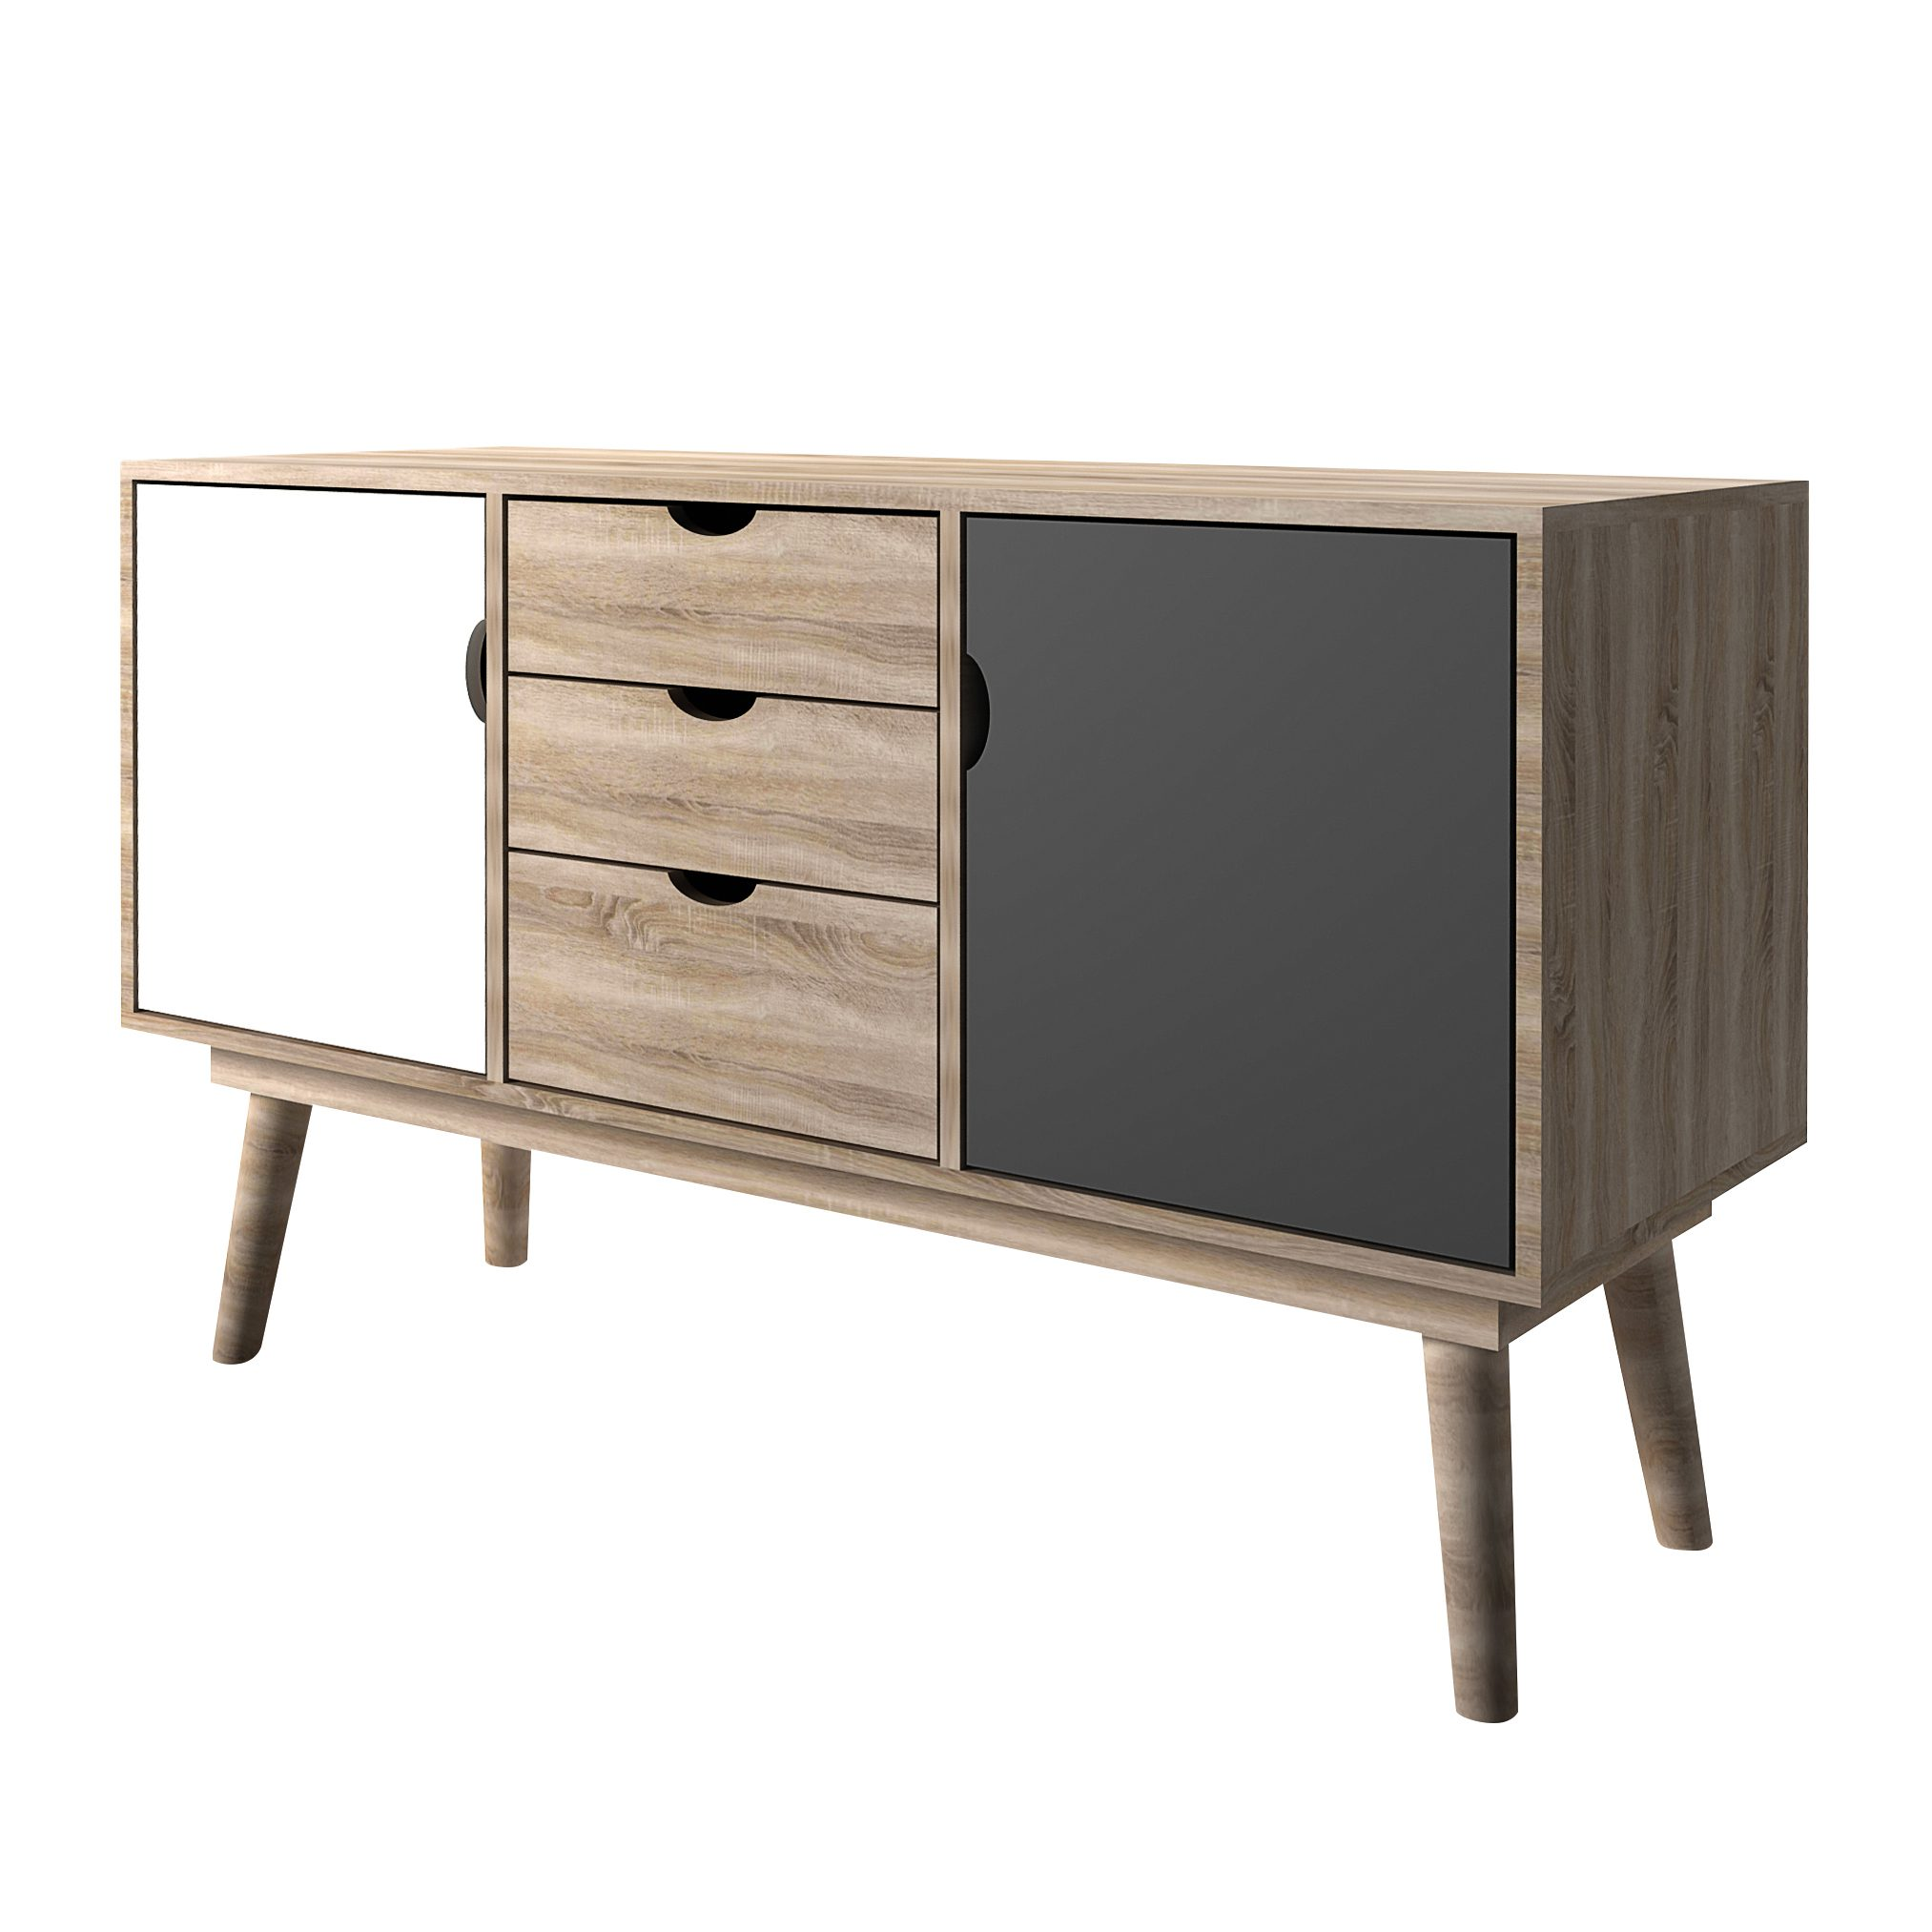 Secily Oak 2 Door Sideboard Grey